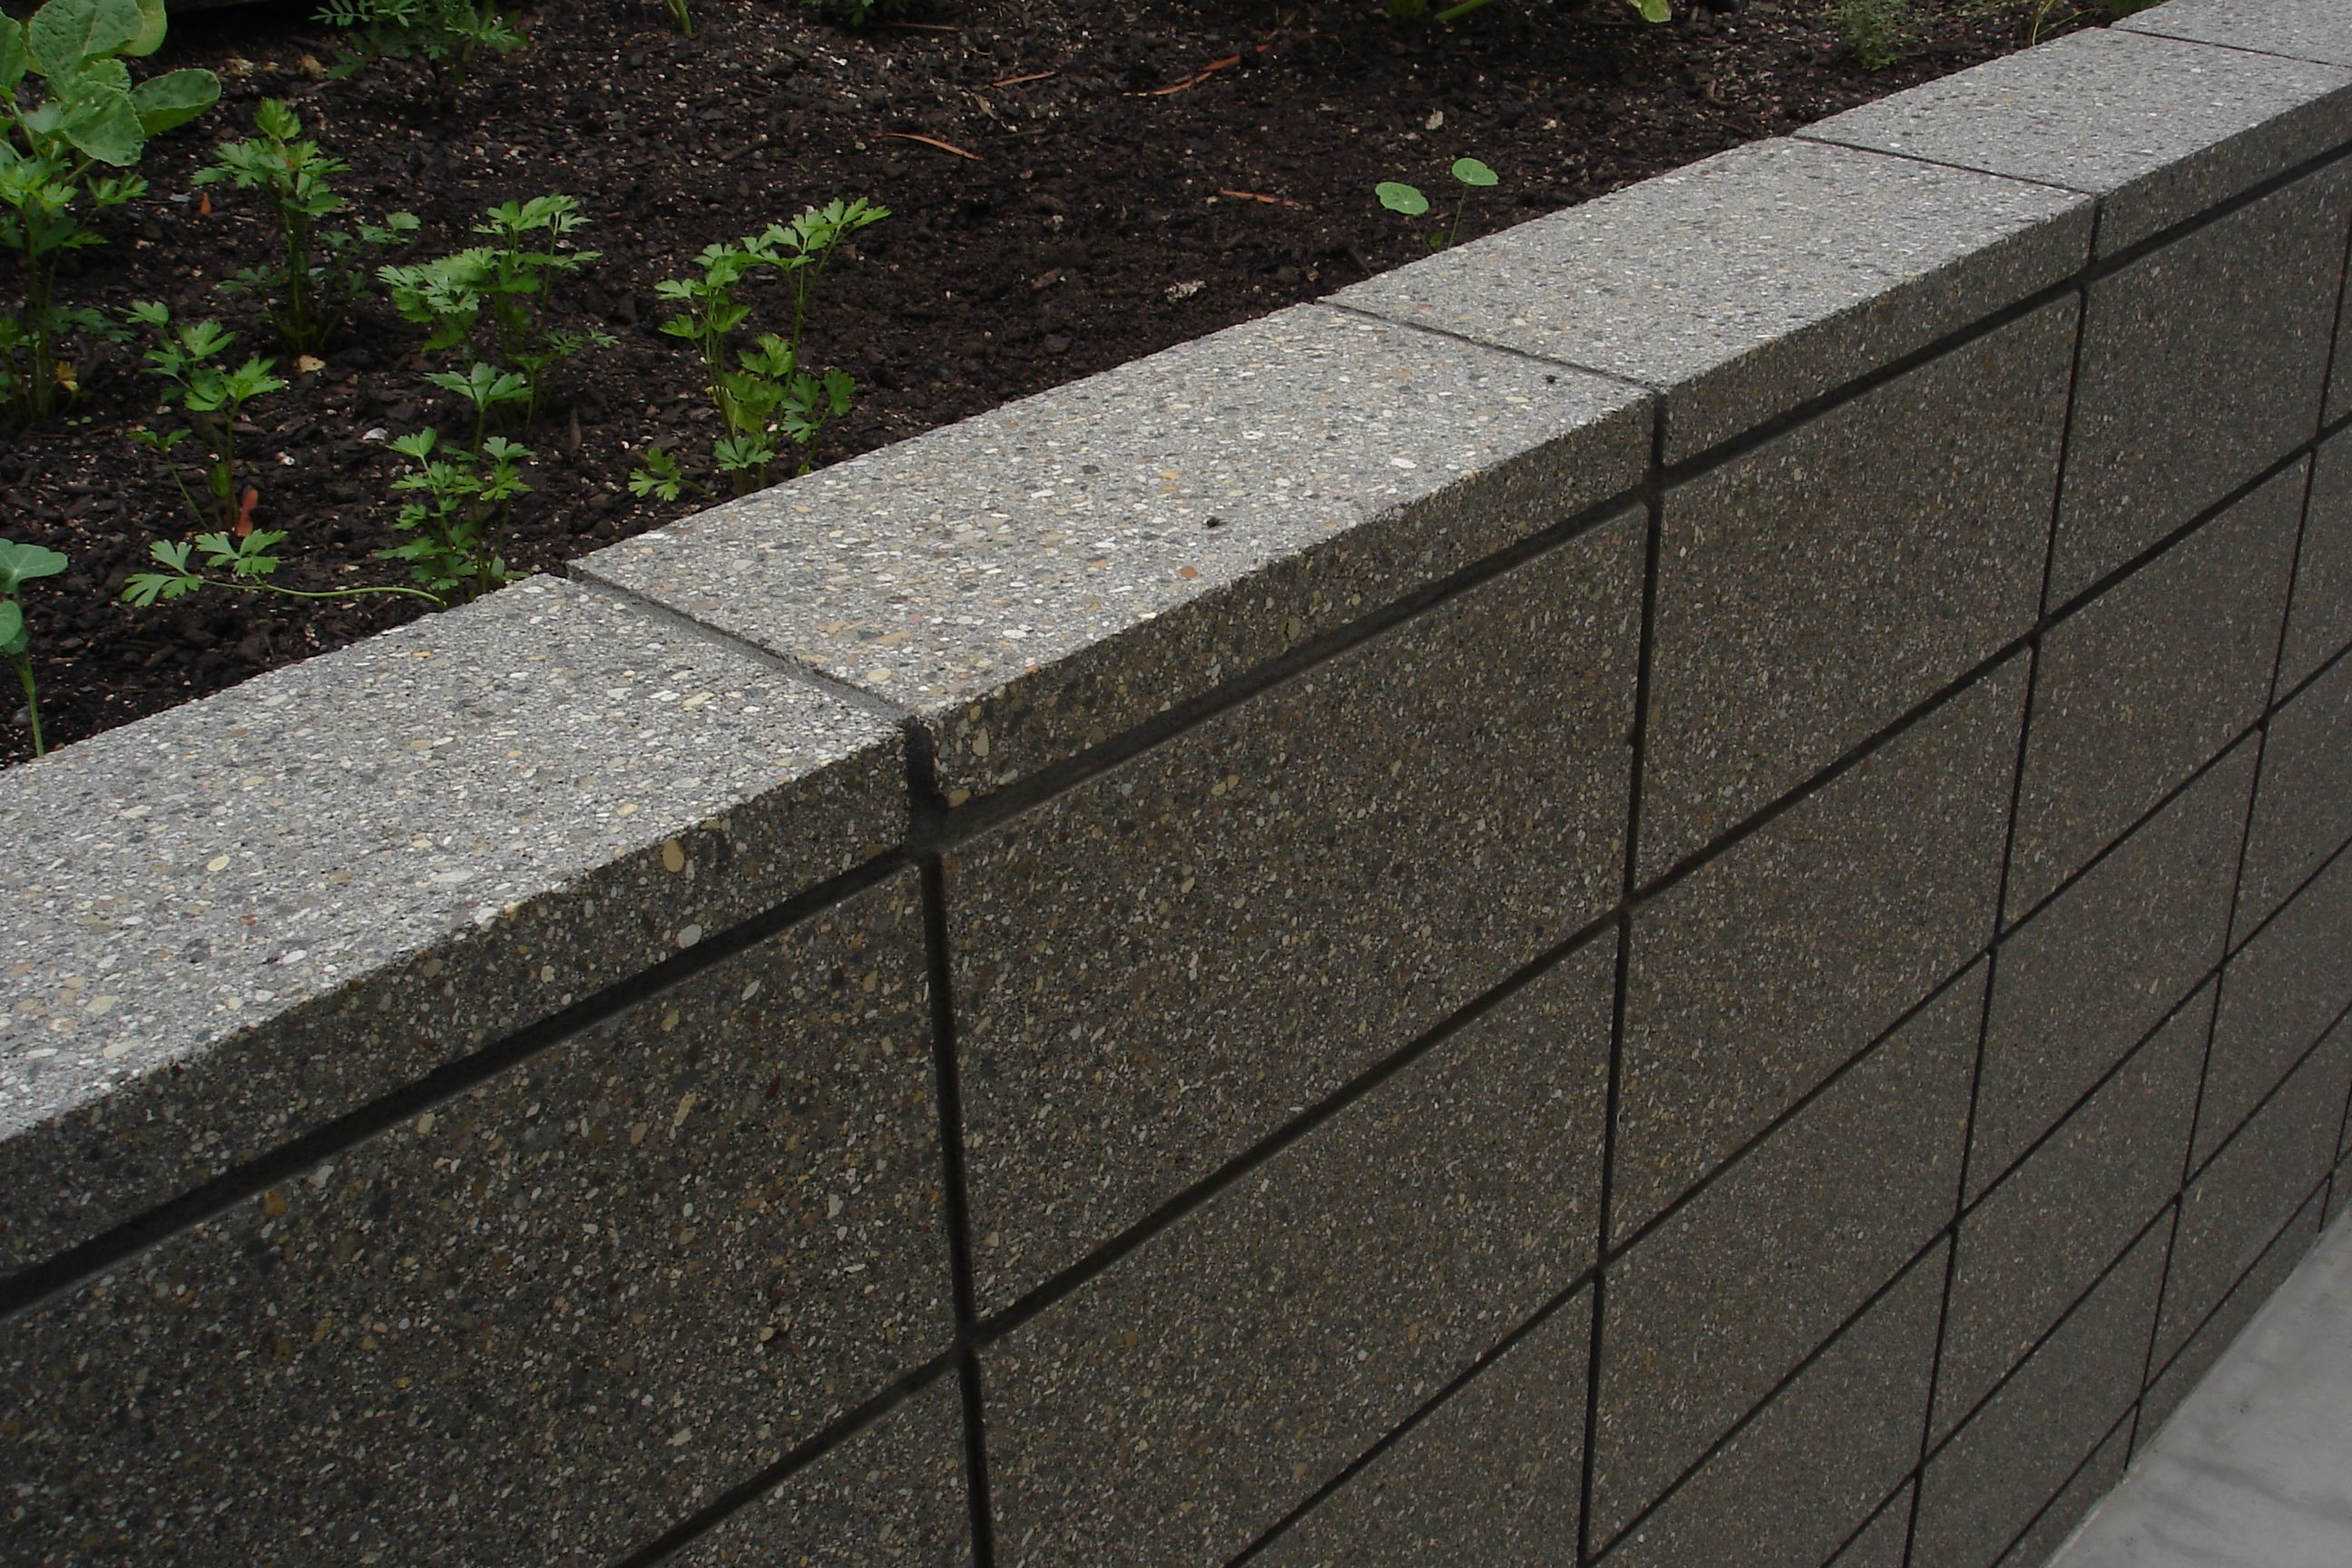 Retaining Wall Blocks Design retaining wall blocks design 47 decor decorating in retaining wall blocks design Find This Pin And More On Retaining Walls Tasty Concrete Block Retaining Wall Design